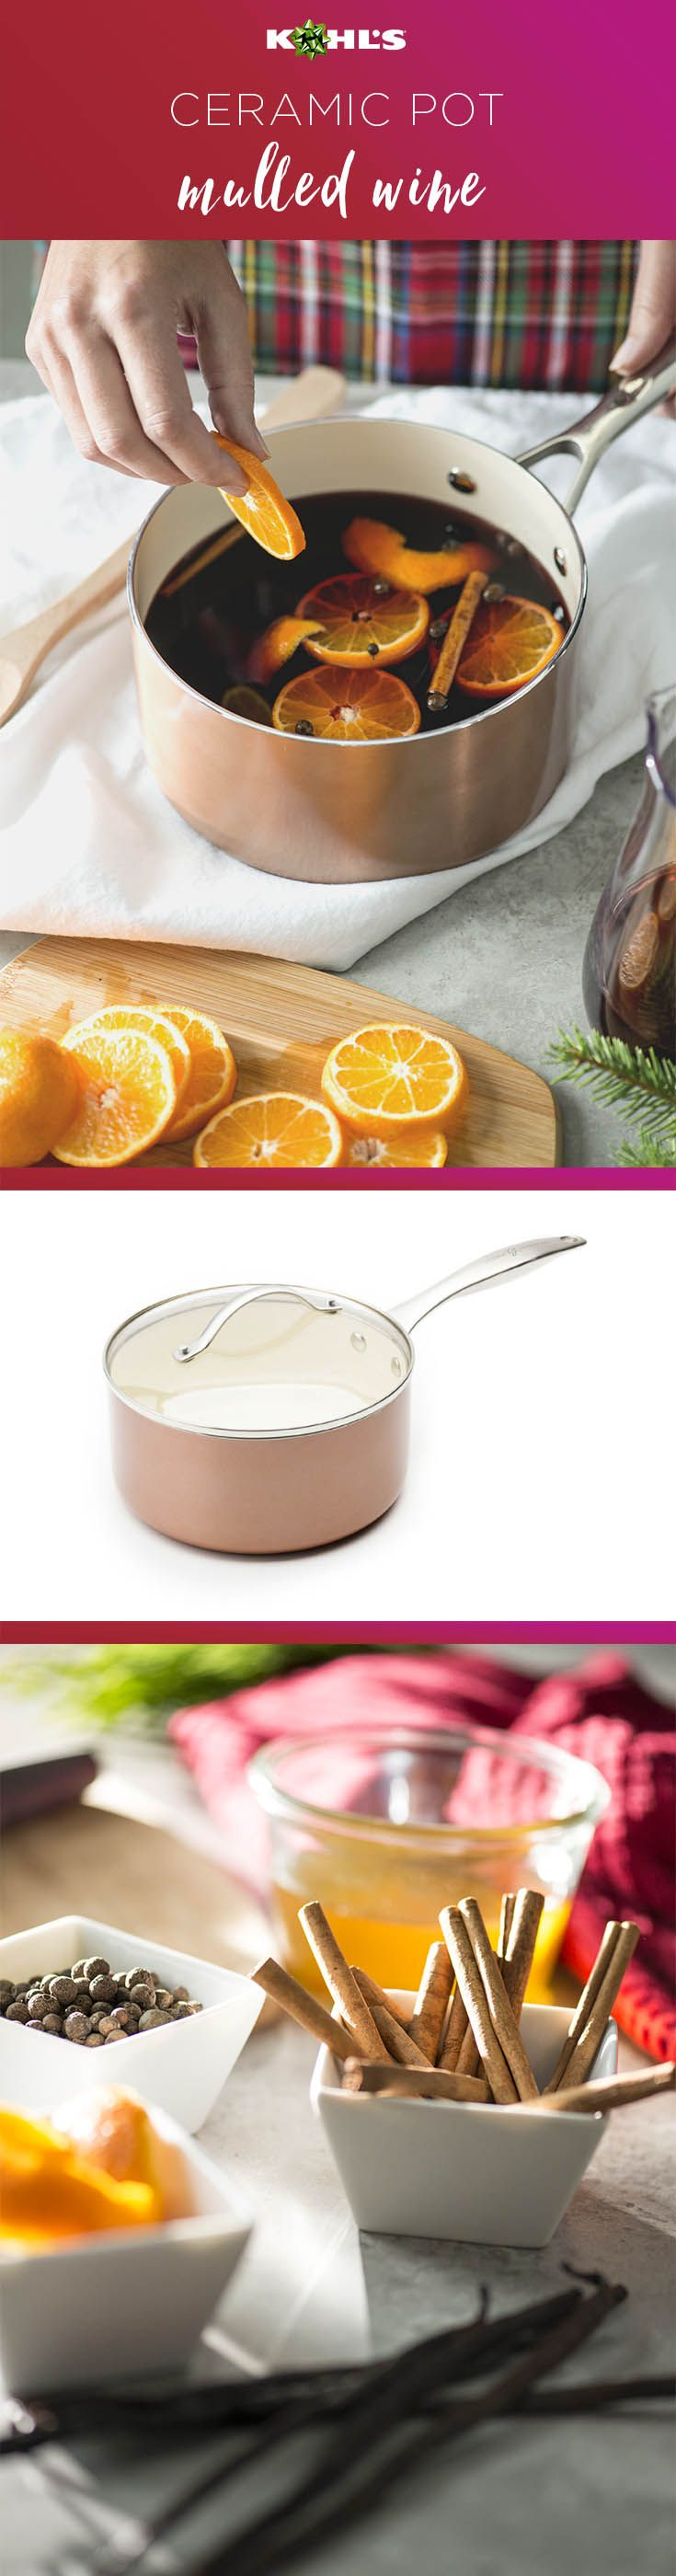 What's warm, delicious and makes the house smell great? Mulled wine! Plus, it's easy to make with just a few ingredients. Shop Food Network ceramic cookware at Kohl's. #winter #shopping